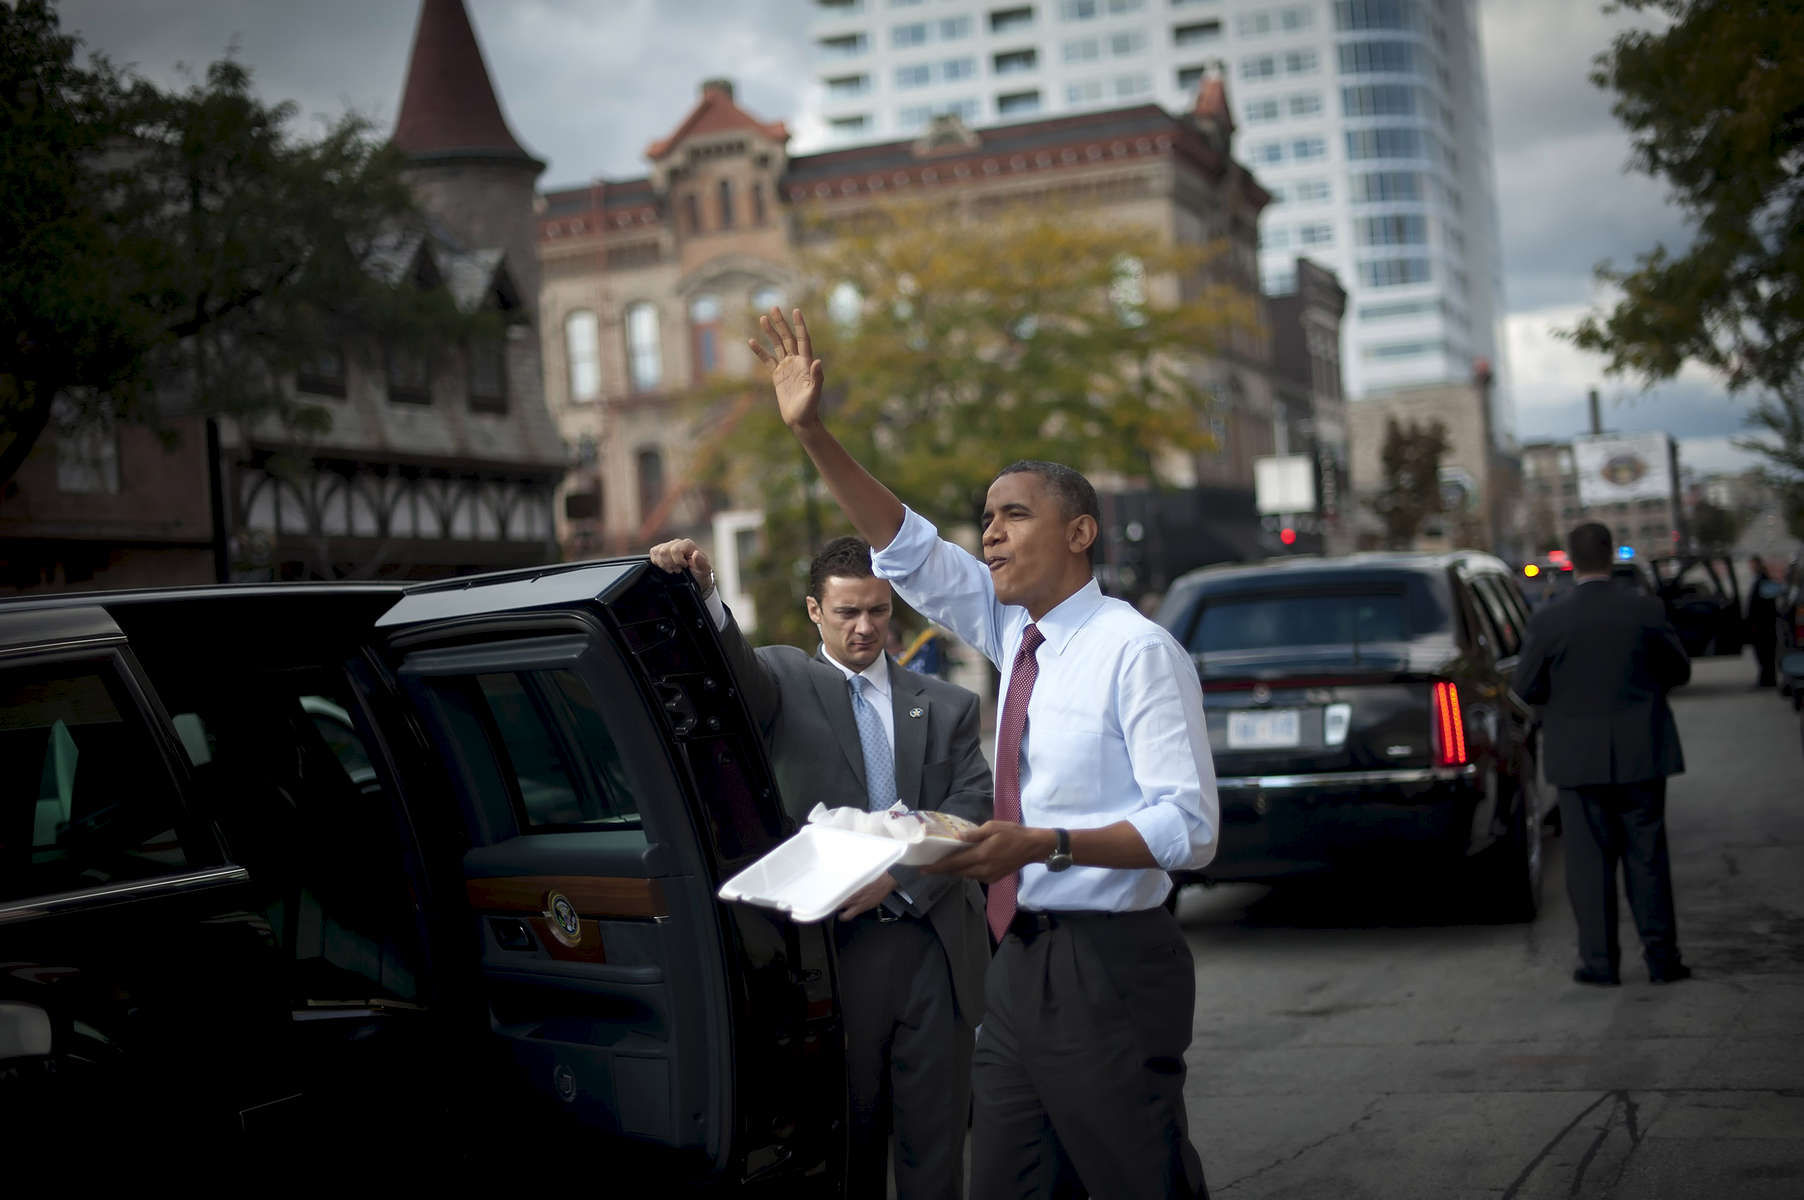 September 22, 2012 - Milwaukee, WI: President Barack Obama waves to supporters after leaving Usinger's Fine Sausage in Milwaukee, WI.  (Scout Tufankjian for Obama for America/Polaris)